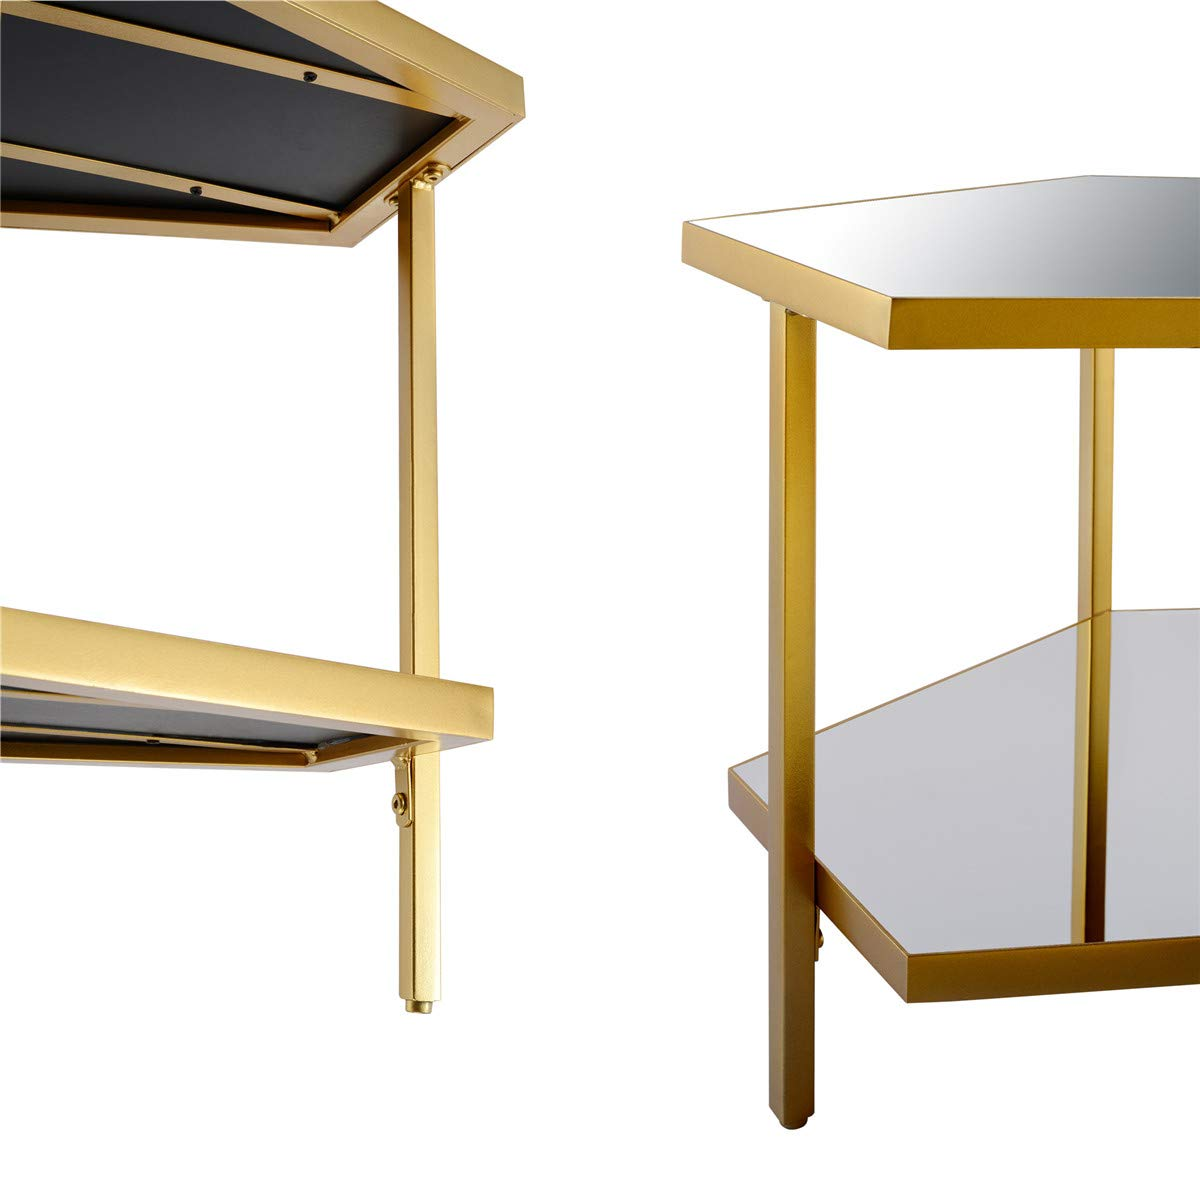 End Table Small Side Table End Table, Mirror Glass, Gold Metal, Save Space Corner Table for Bedroom Living Room